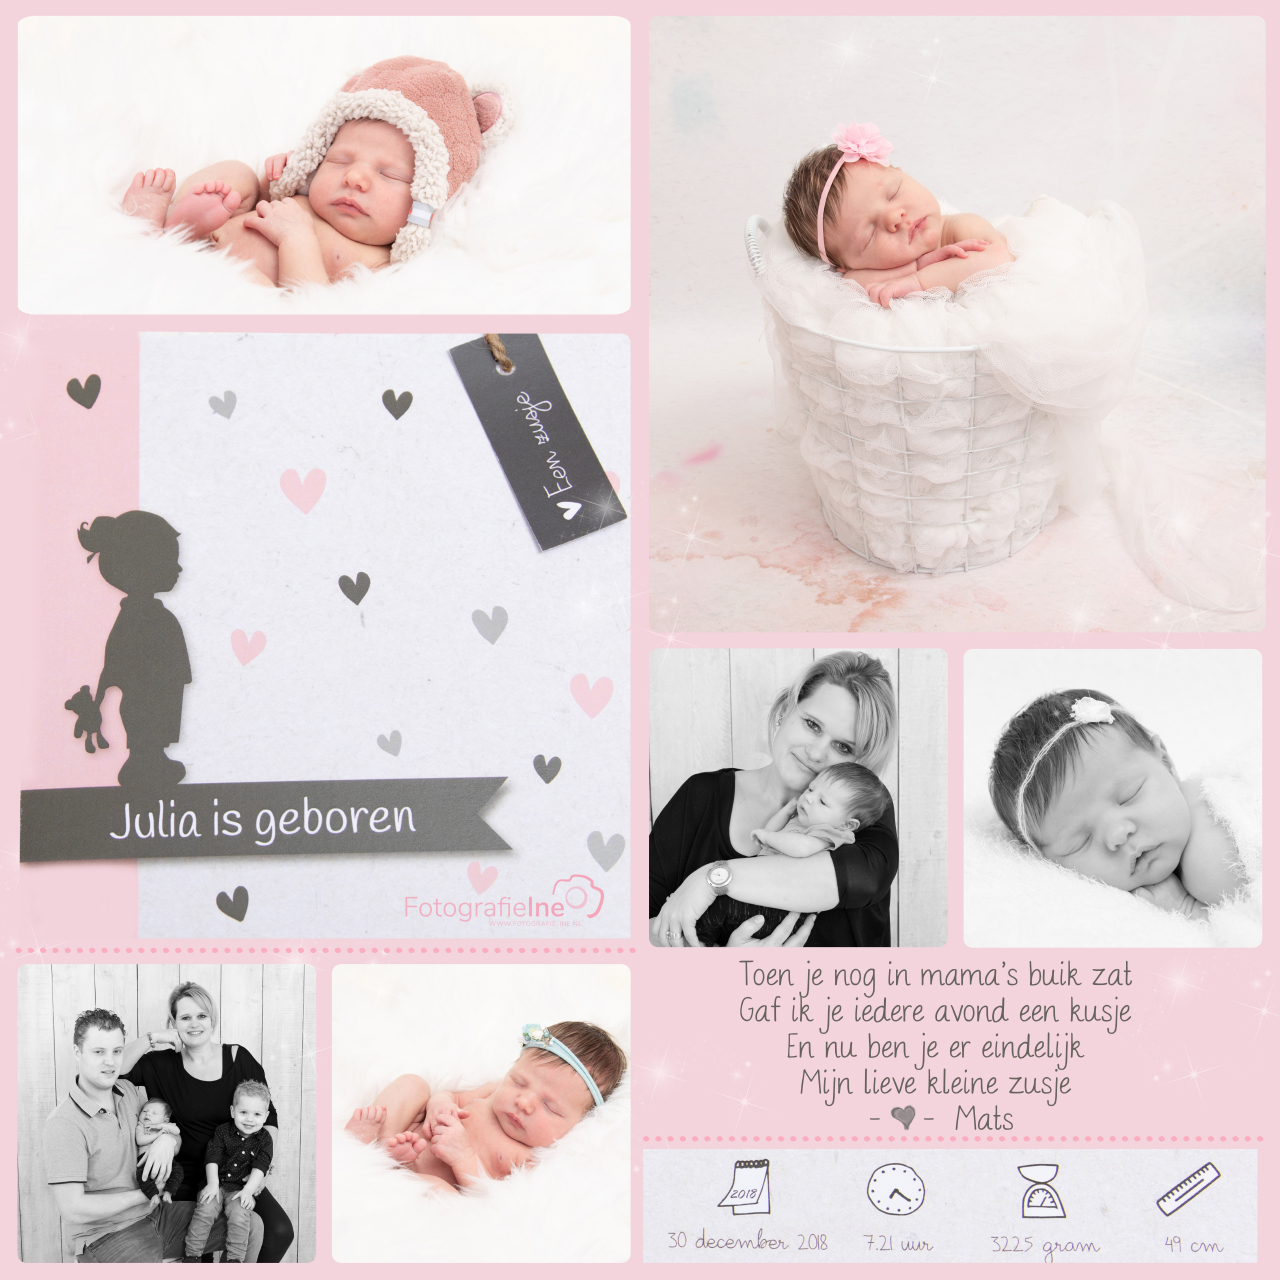 Fotografie Ine – collage newborn Julia